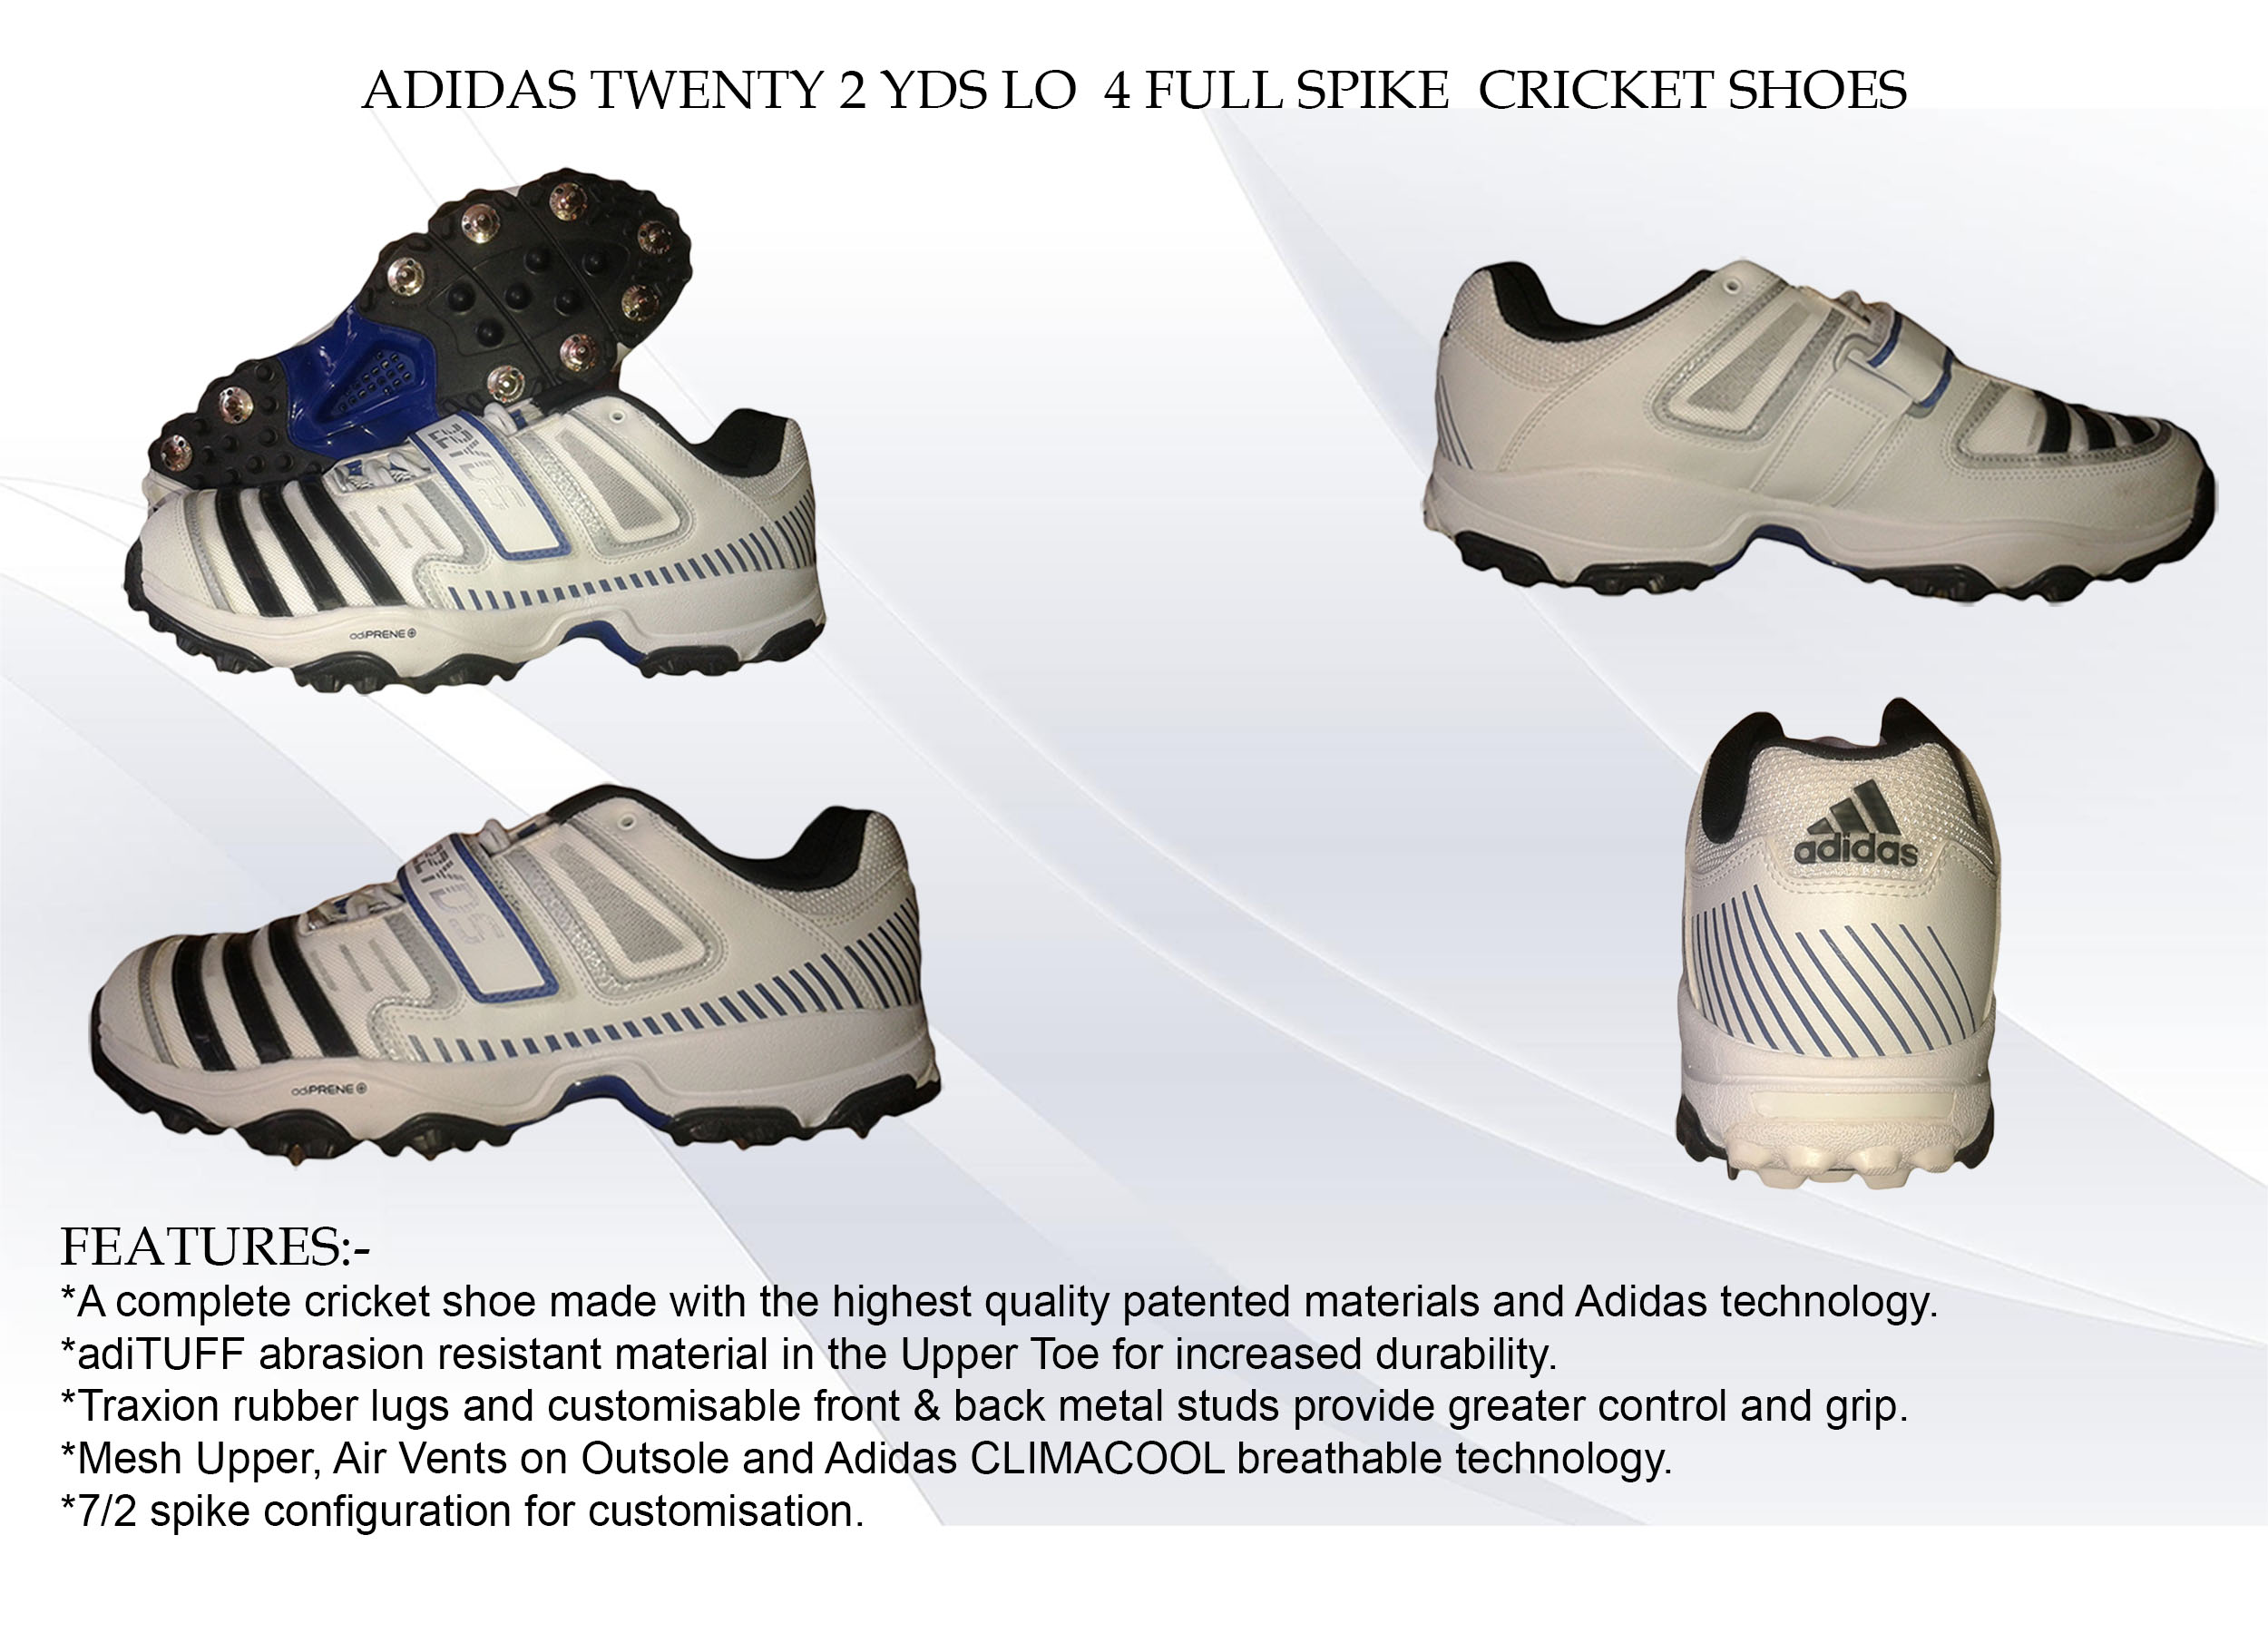 ADIDAS TWENTY 2YDS LO 4 FULL SPIKE CRICKET